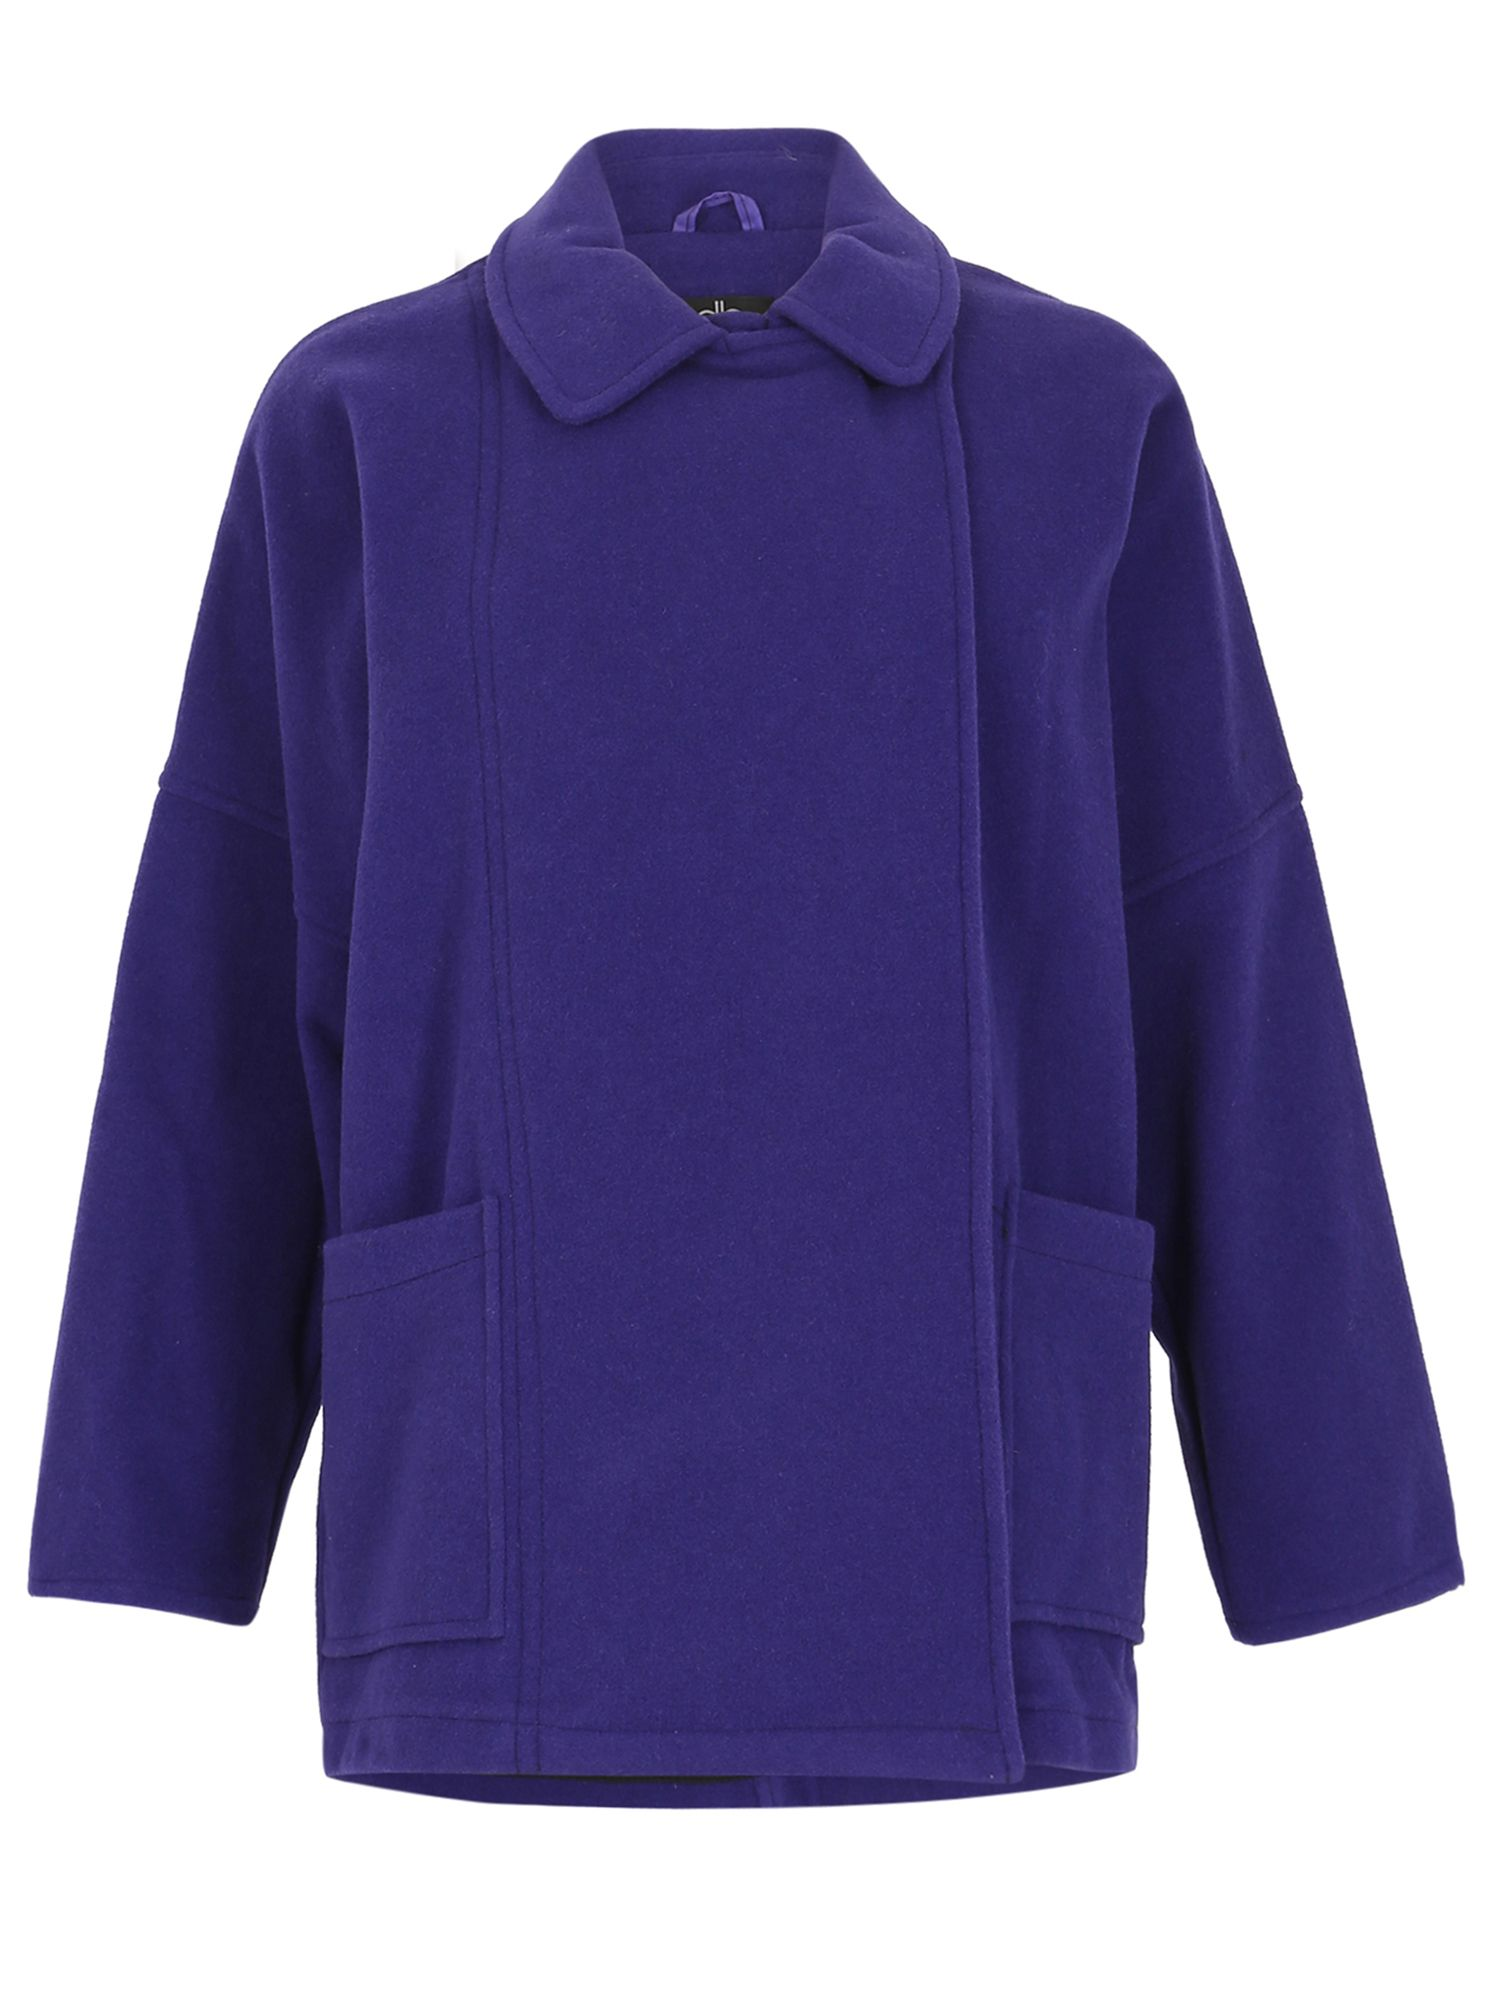 David Barry Unlined Wool Jacket Batwing, Purple